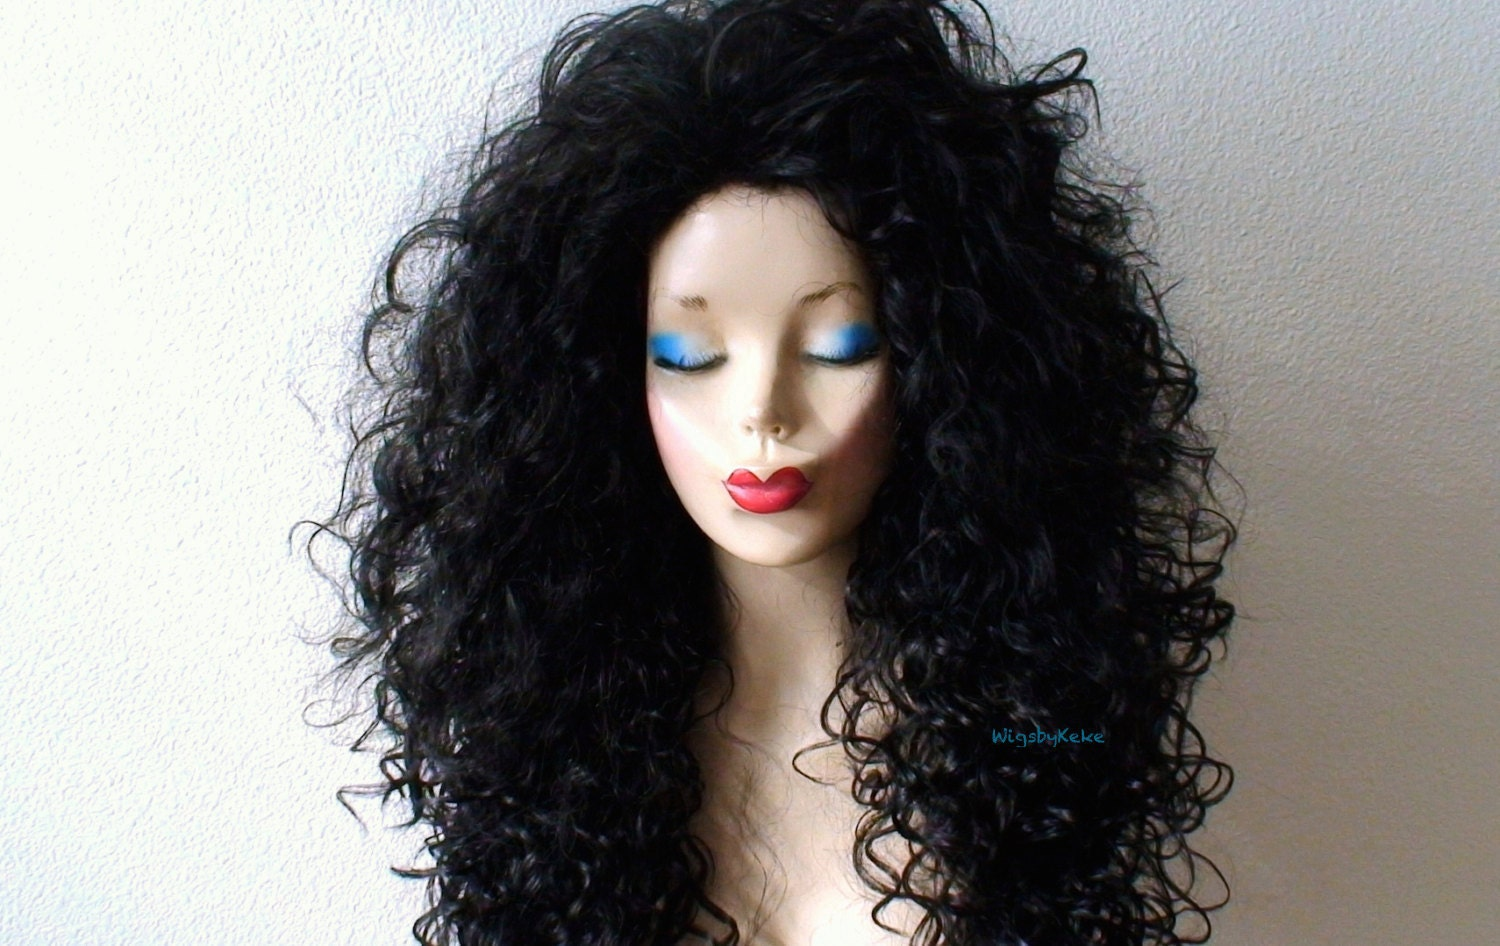 Black wig. Cosplay wig. Long curly extra volume hair wig. Drag